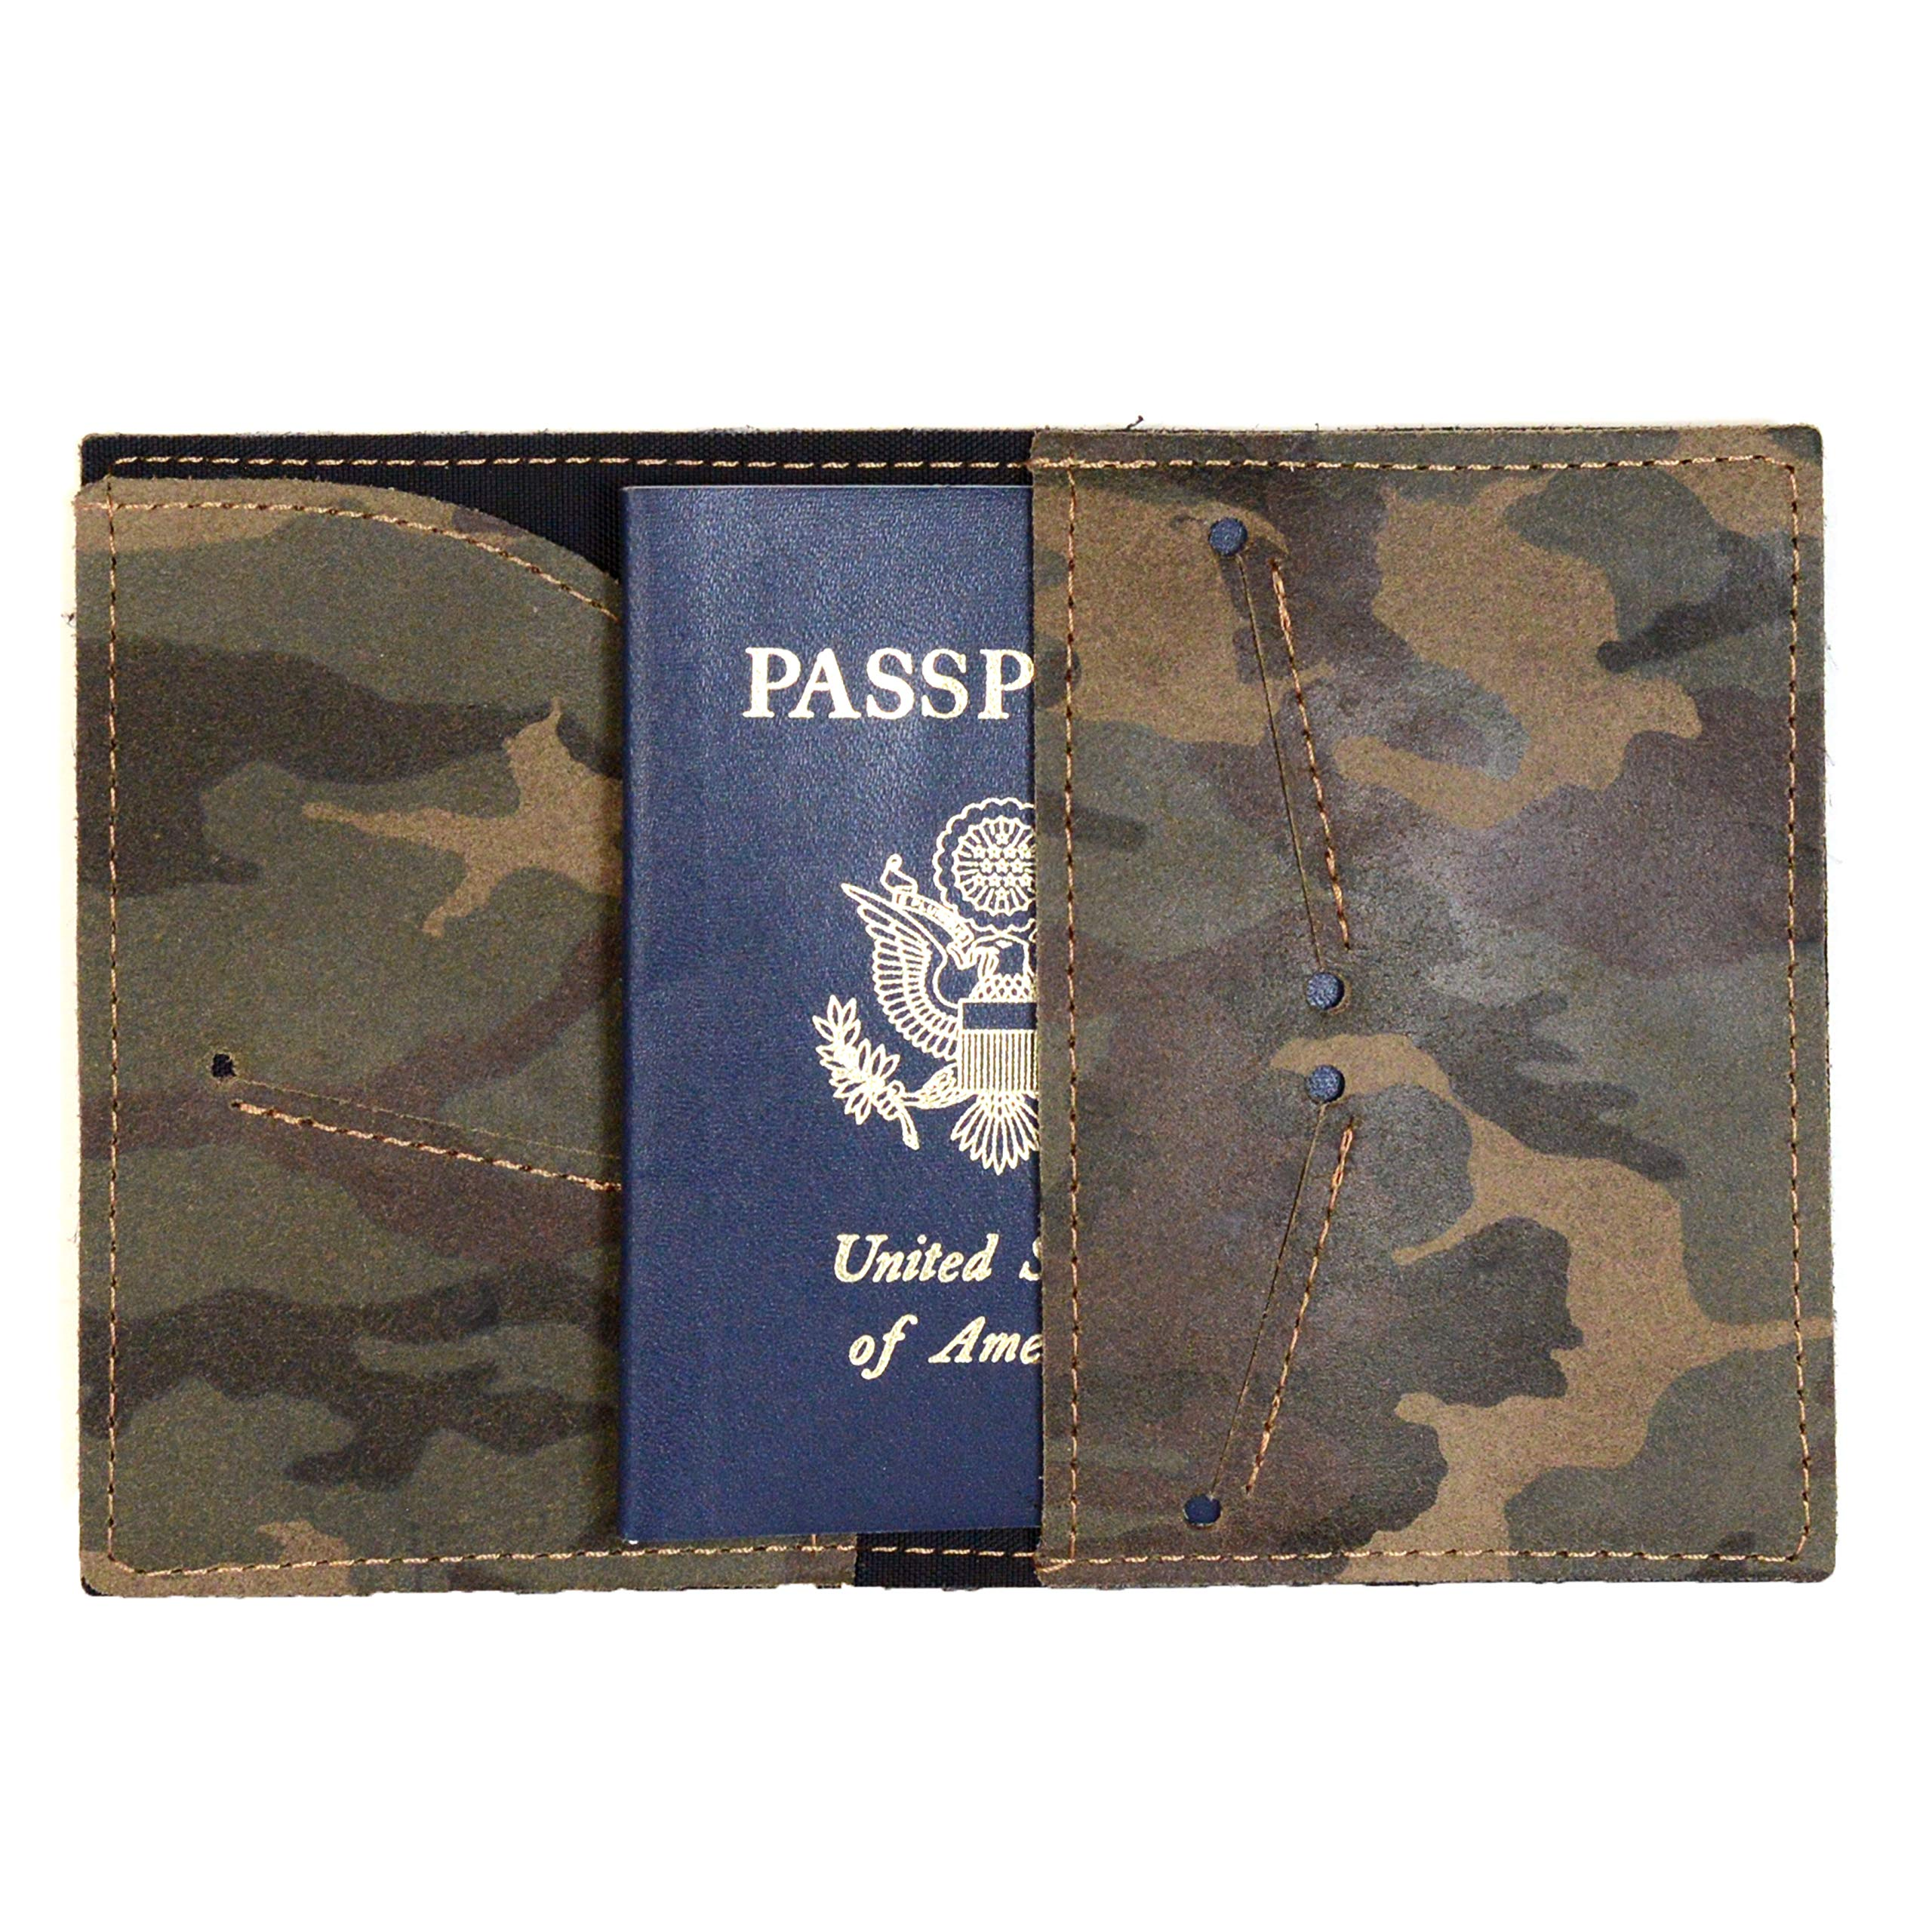 Handmade Camouflage Leather Passport Holder   Camo Passport Cover or Travel Wallet- Gift for Him Men Husband Dad Grad Father's